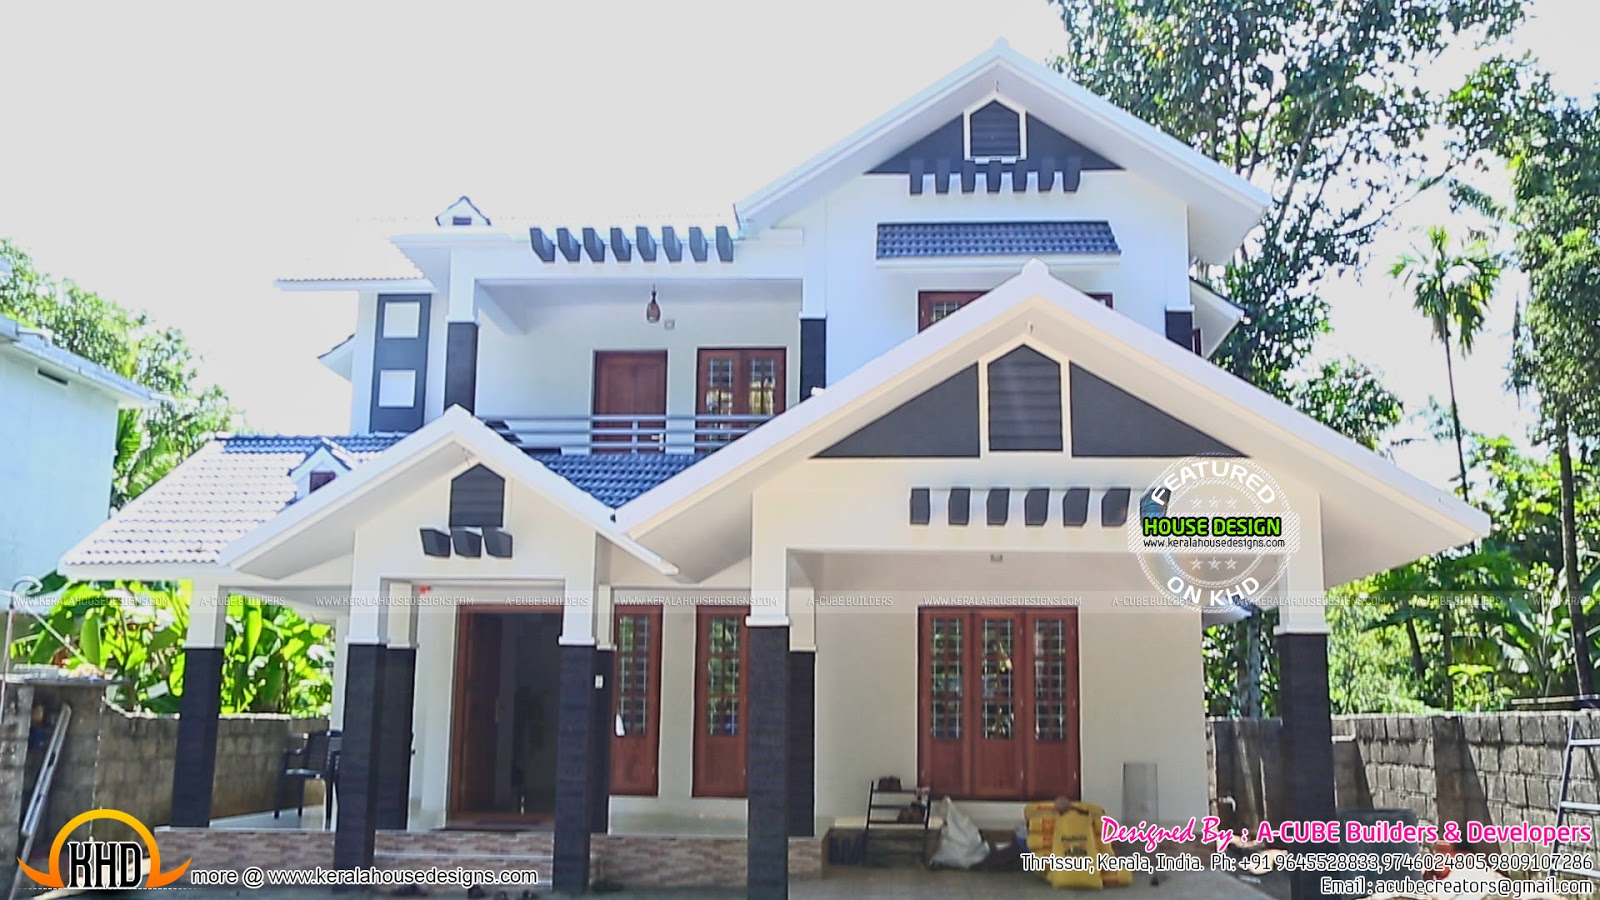 New house plans for 2016 starts here kerala home design for Modern house plans 2016